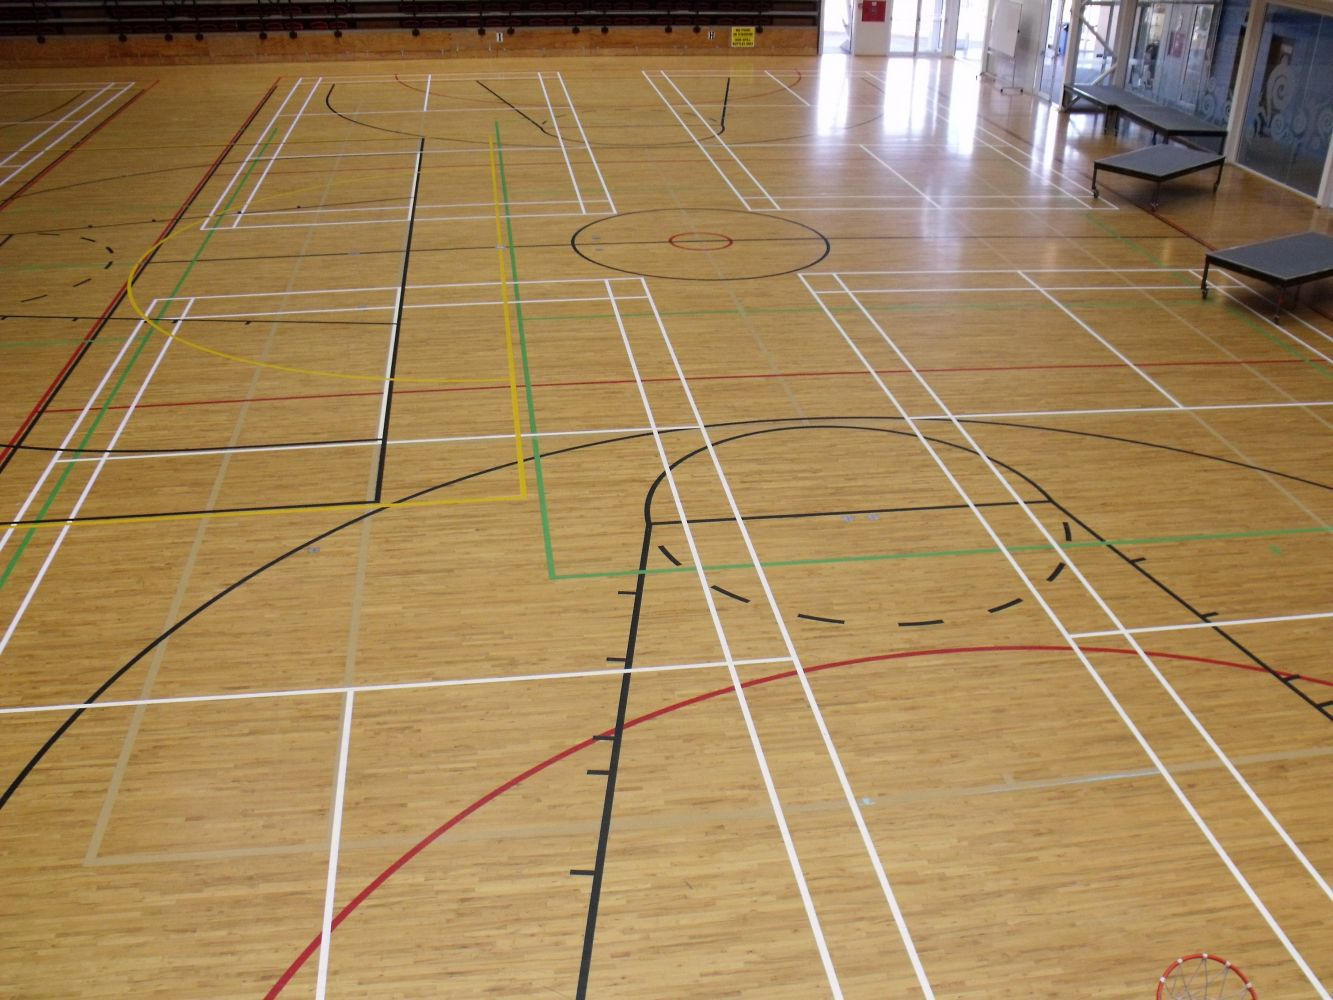 Line markings at an indoor gym